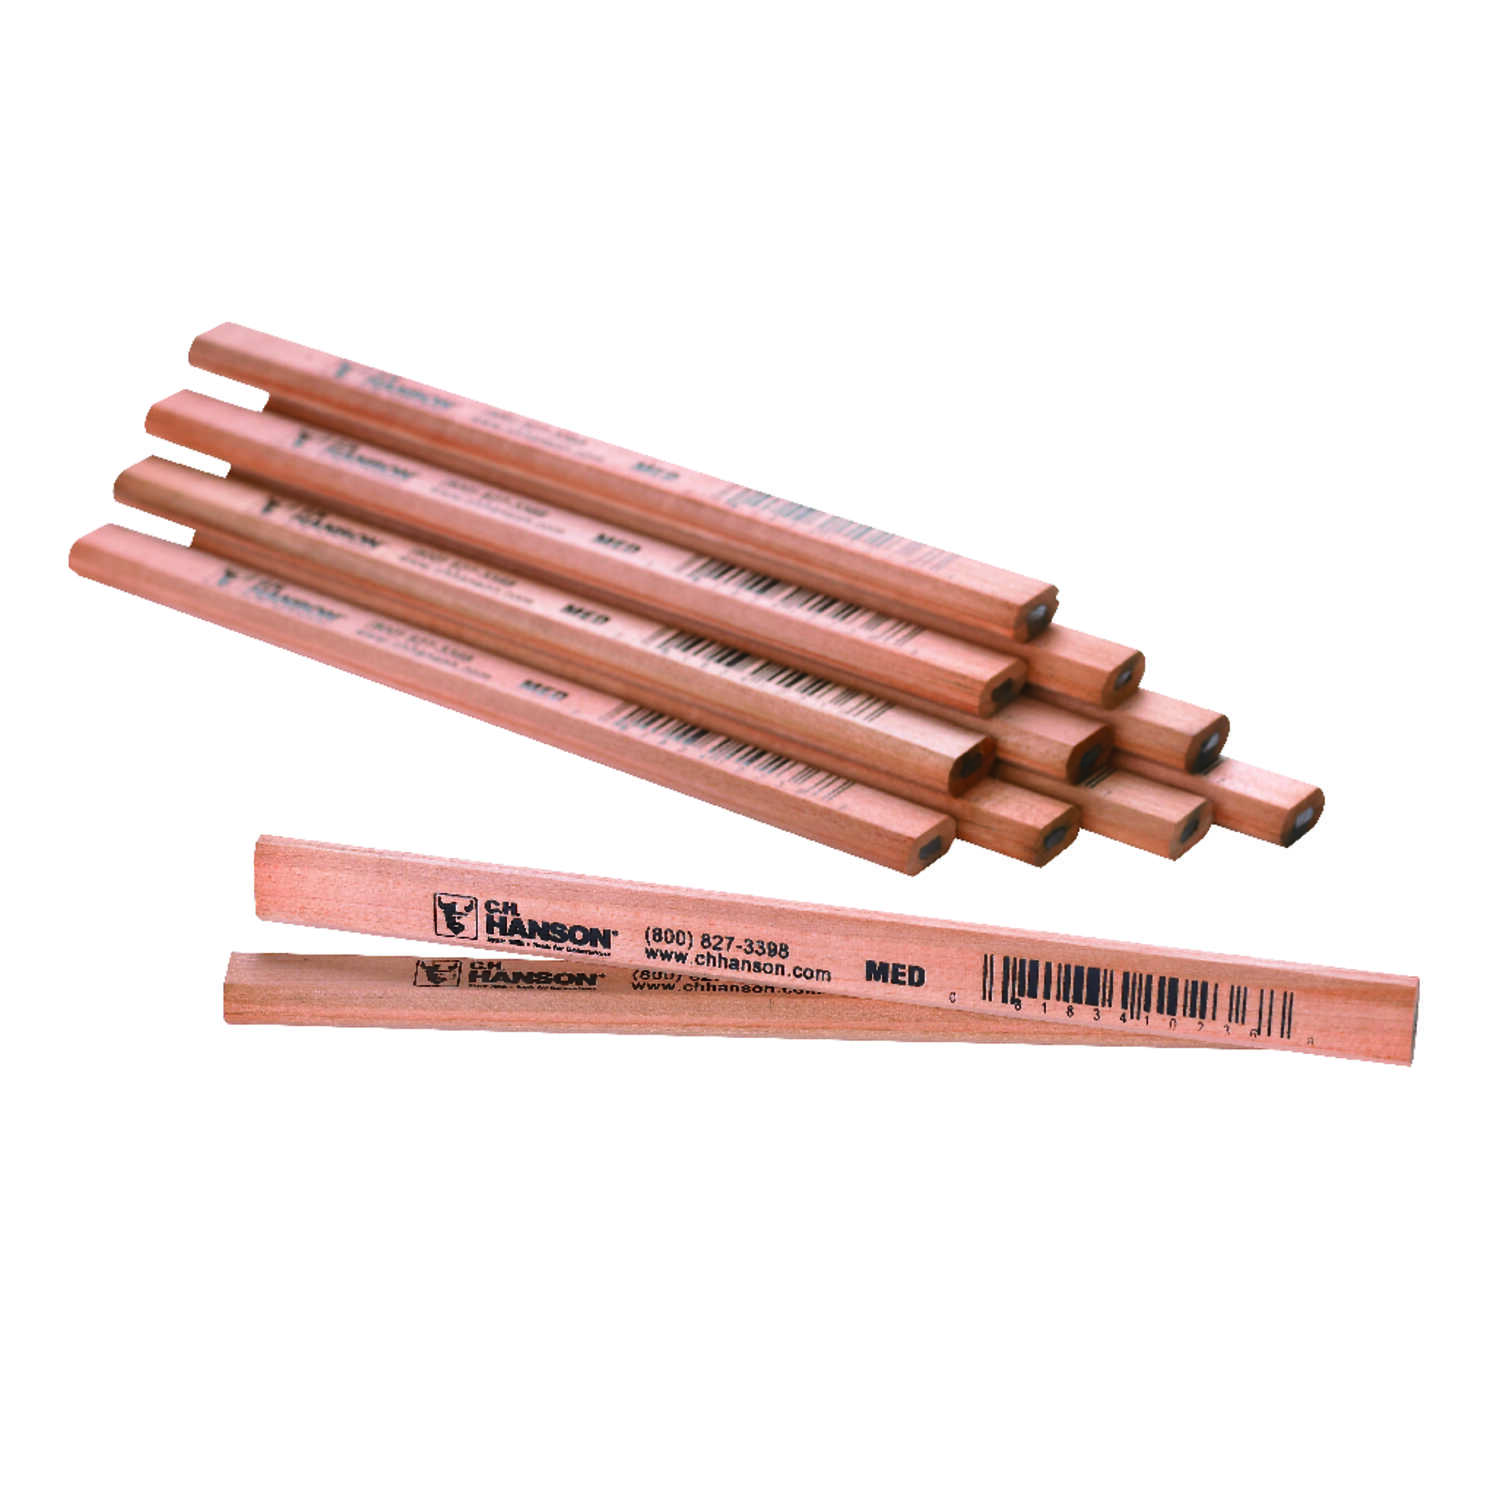 C.H. Hanson  7 in. L x 0.5 in. W Carpenter Pencil  Beige  Wood  1 pc.